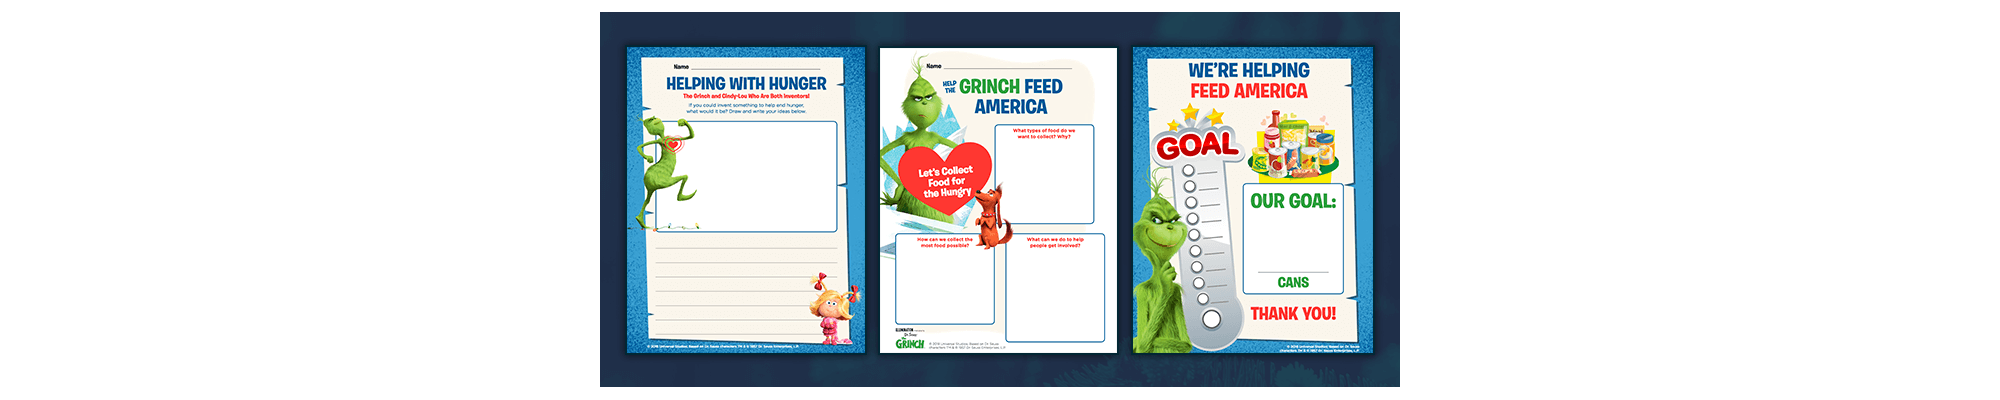 #GrinchforGood Teacher Kit